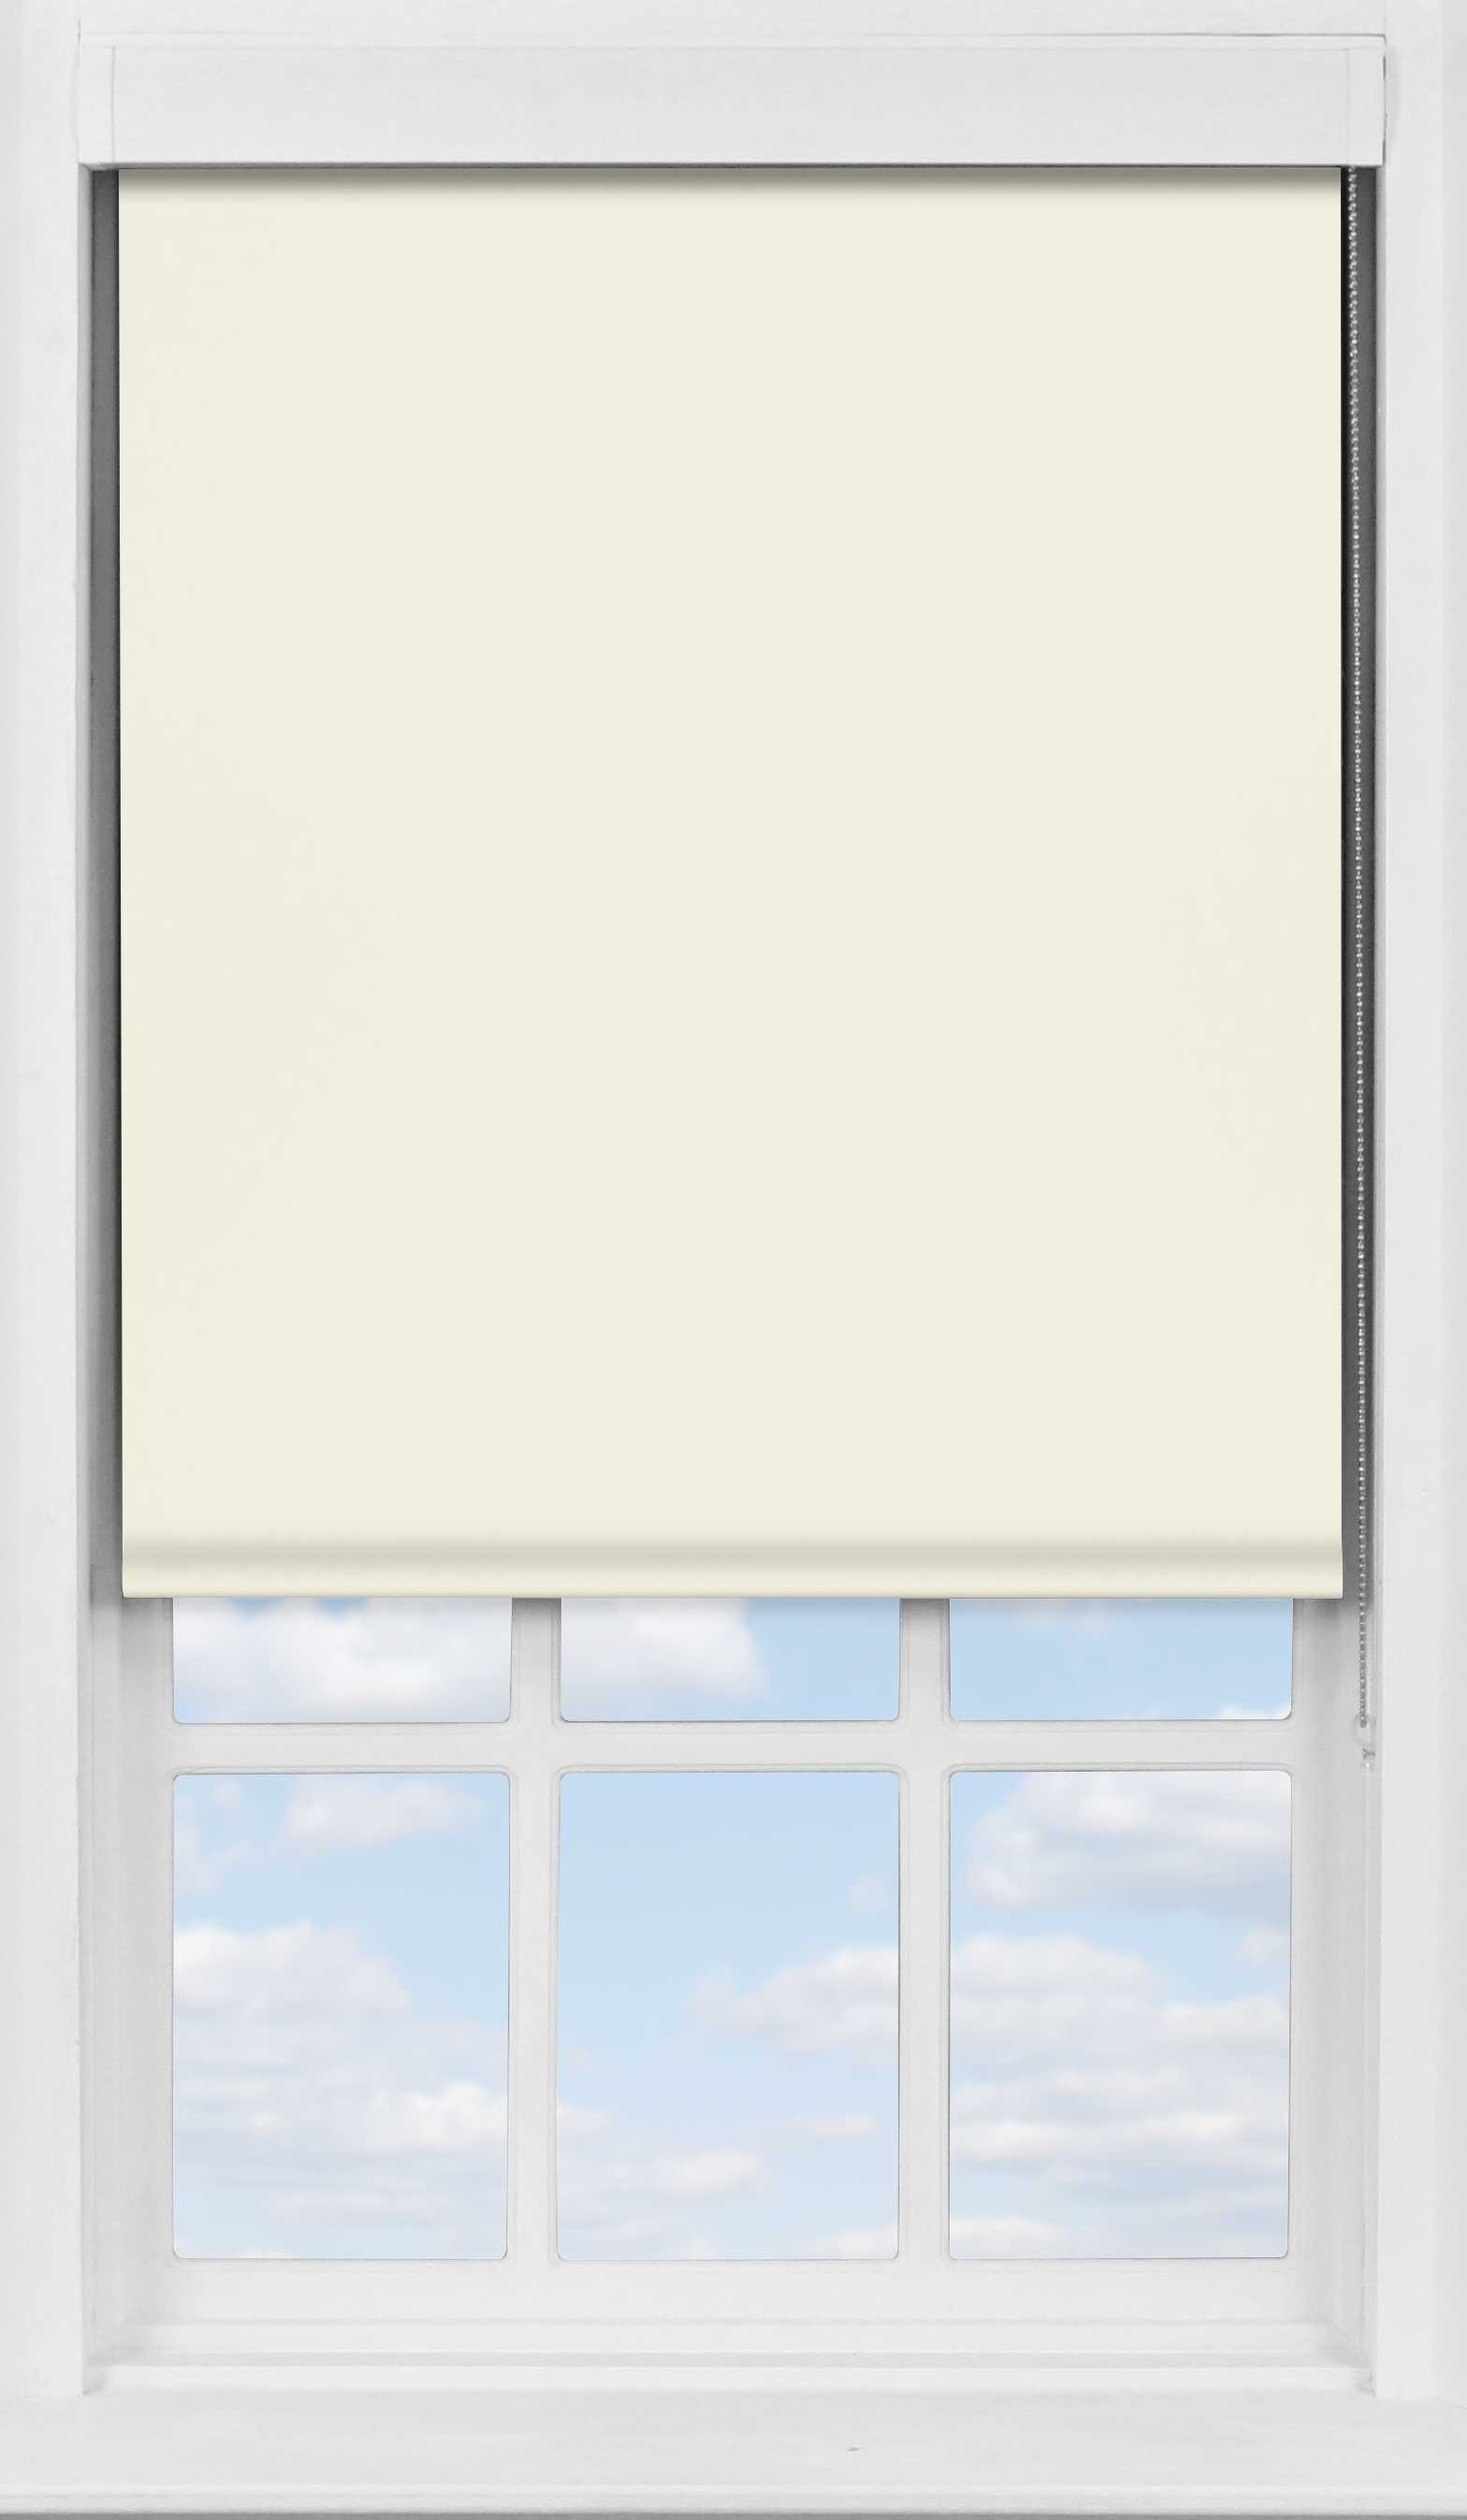 Premium Roller Blind in Soft Sand Translcuent